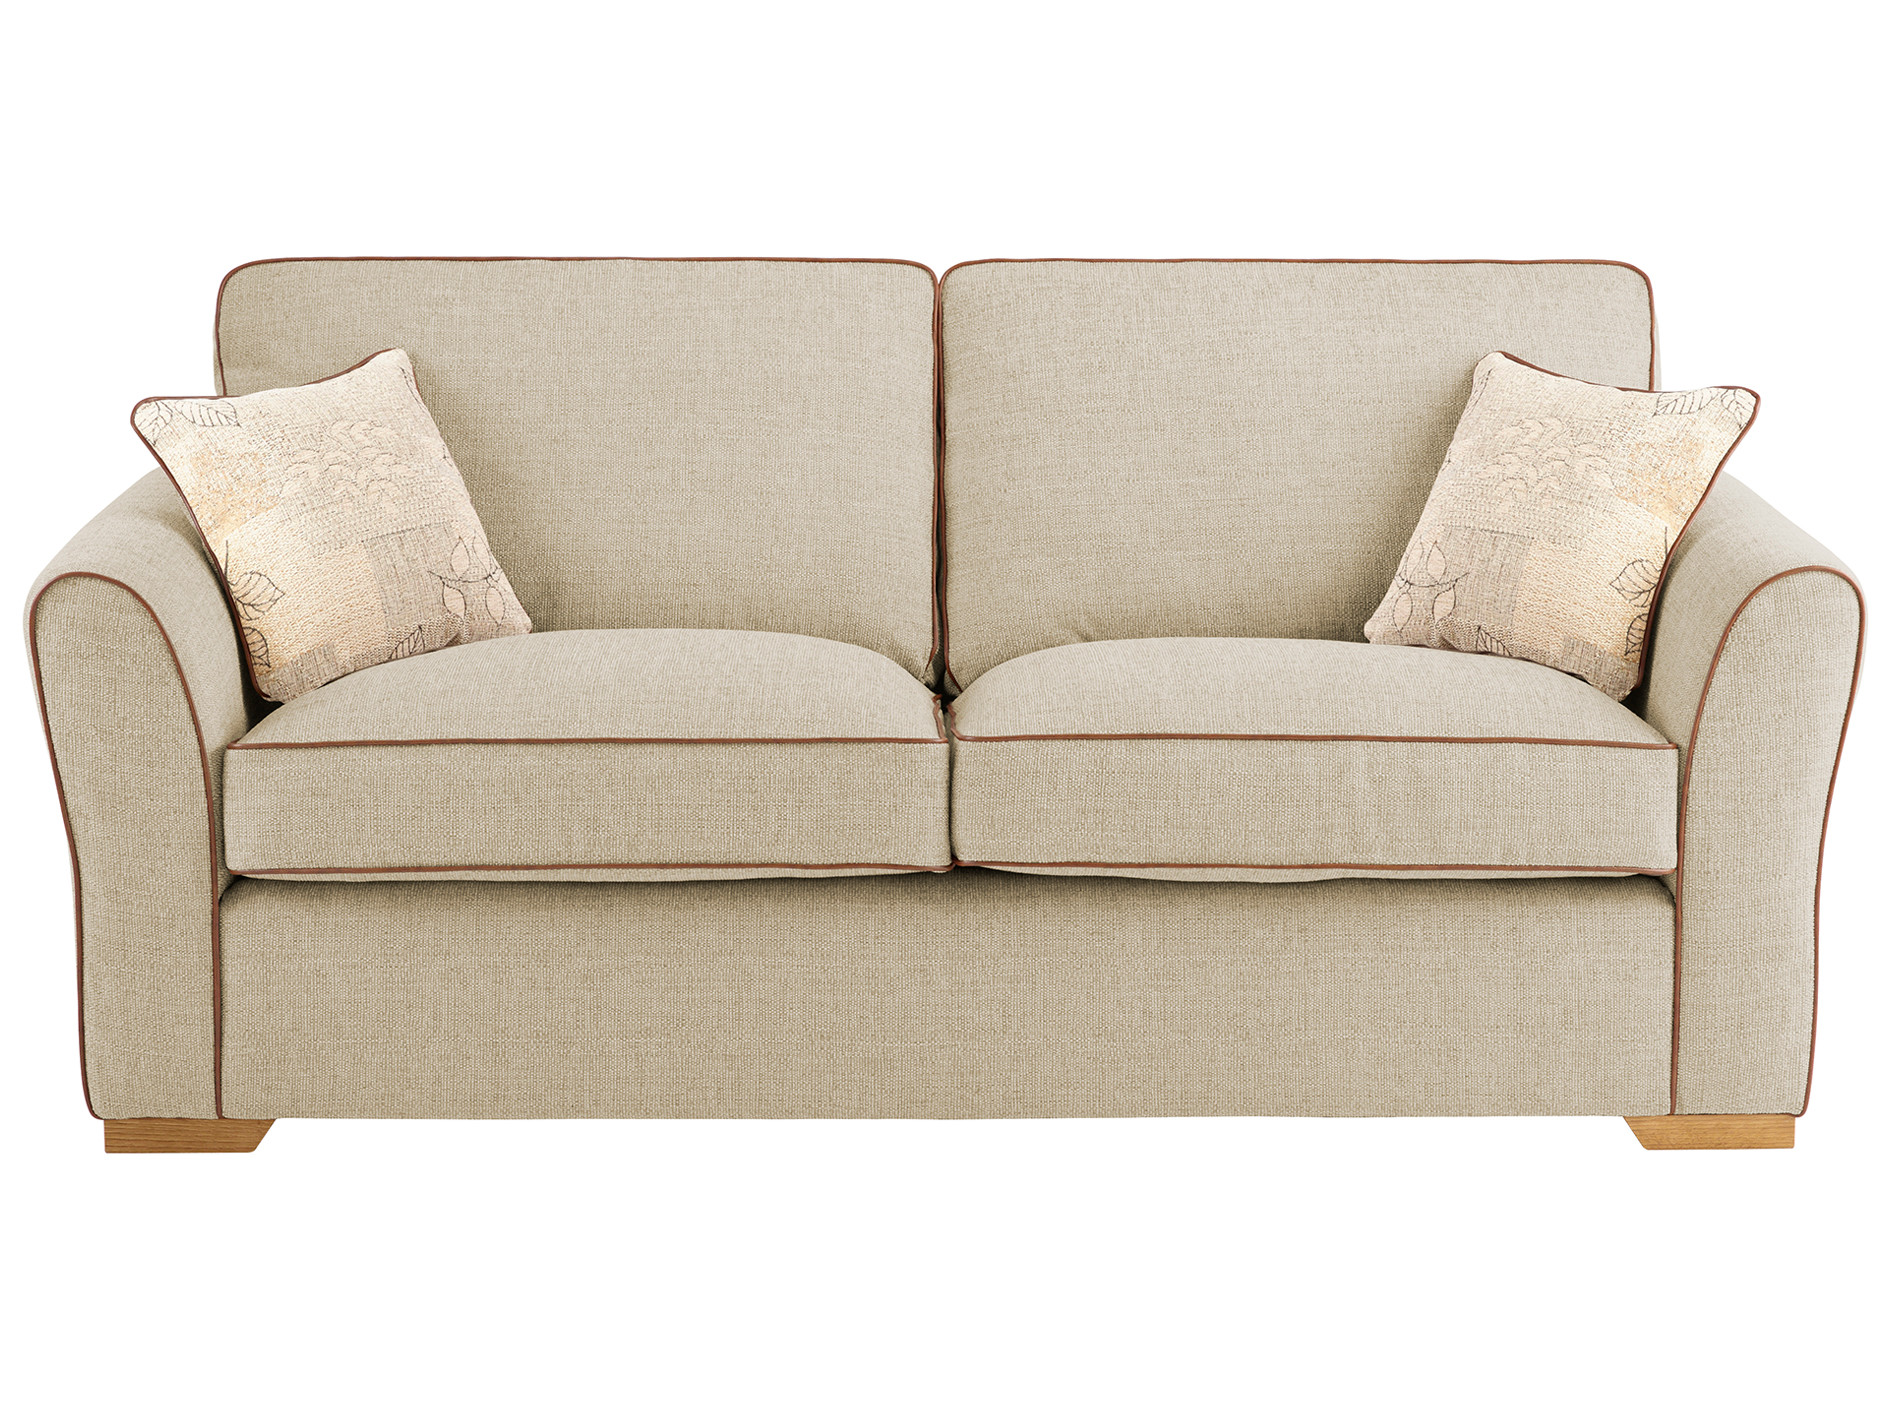 sofa beds naples florida tufted with chaise sectional sofas fl emailsanity